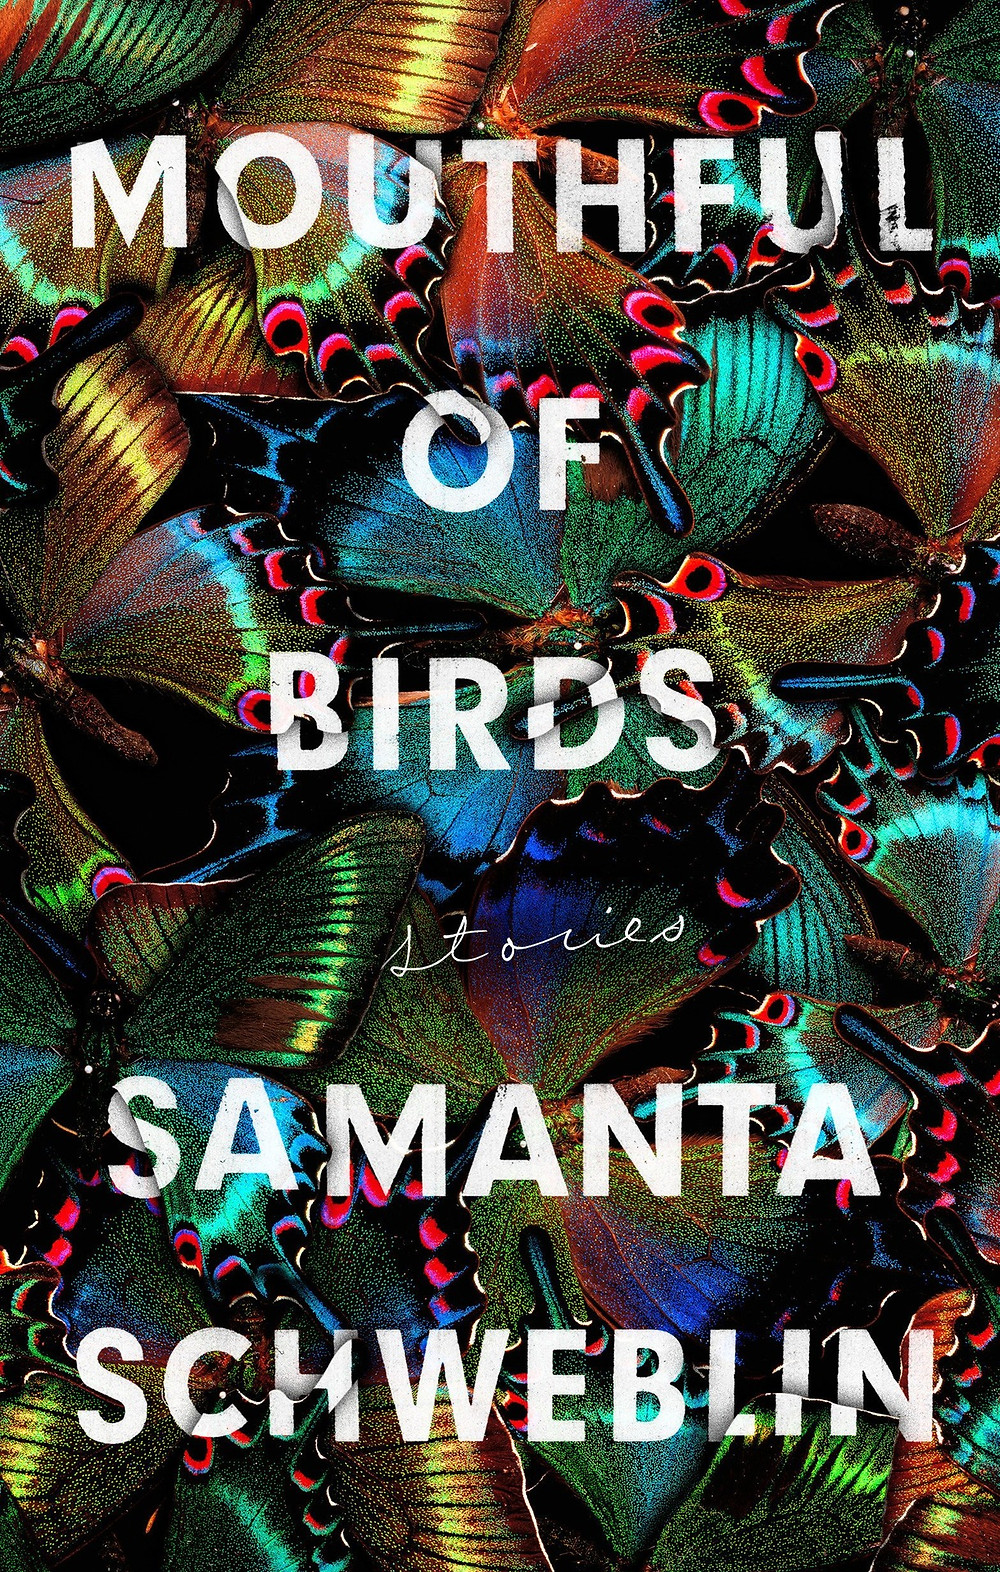 "Mouthful of Birds: Stories by Samanta Schweblin (Author). The Book Slut book reviews, thebooksglut Friday debrief, ""Superb"" -- Vogue  ""What makes Schweblin so startling as a writer, however, what makes her rare and important, is that she is impelled not by mere talent or ambition but by vision."" -- New York Times A powerful, eerily unsettling story collection from a major international literary star. The brilliant stories in Mouthful of Birds burrow their way into your psyche and don't let go. Samanta Schweblin haunts and mesmerizes in this extraordinary collection featuring women on the edge, men turned upside down, the natural world at odds with reality. We think life is one way, but often, it's not -- our expectations for how people act, love, fear can all be upended. Each character in Mouthful of Birds must contend with the unexpected, whether a family coming apart at the seams or a child transforming or a ghostly hellscape or a murder. Schweblin's stories have the feel of a sleepless night, where every shadow and bump in the dark take on huge implications, leaving your pulse racing, and the line between the real and the strange blurs. Product Details Price $16.00  $14.72 Publisher Riverhead Books Publish Date January 07, 2020 Pages 240 Dimensions 5.1 X 0.7 X 8.1 inches 